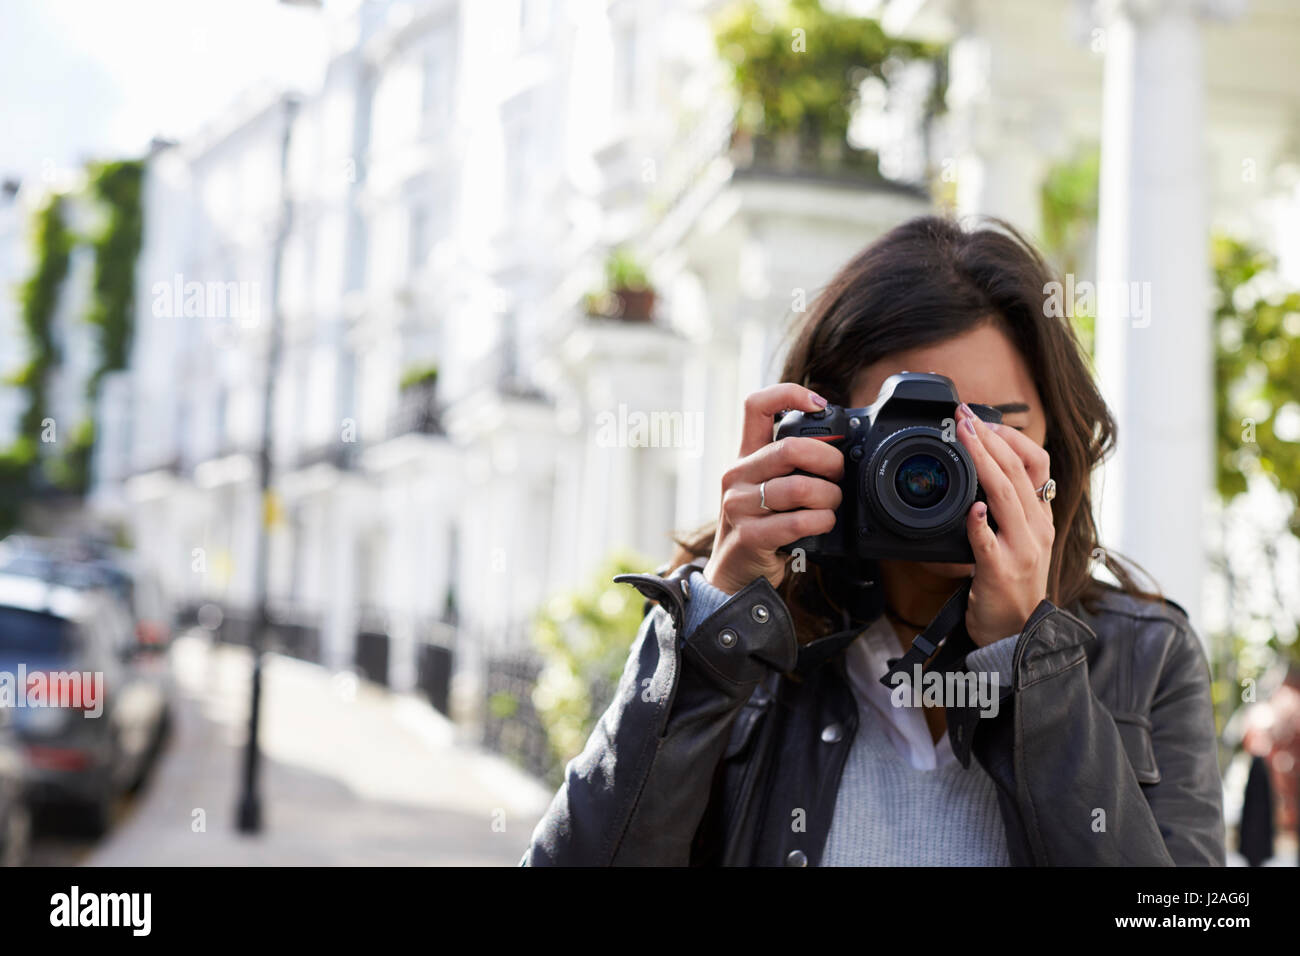 Young woman in street taking photo with SLR camera, close up - Stock Image